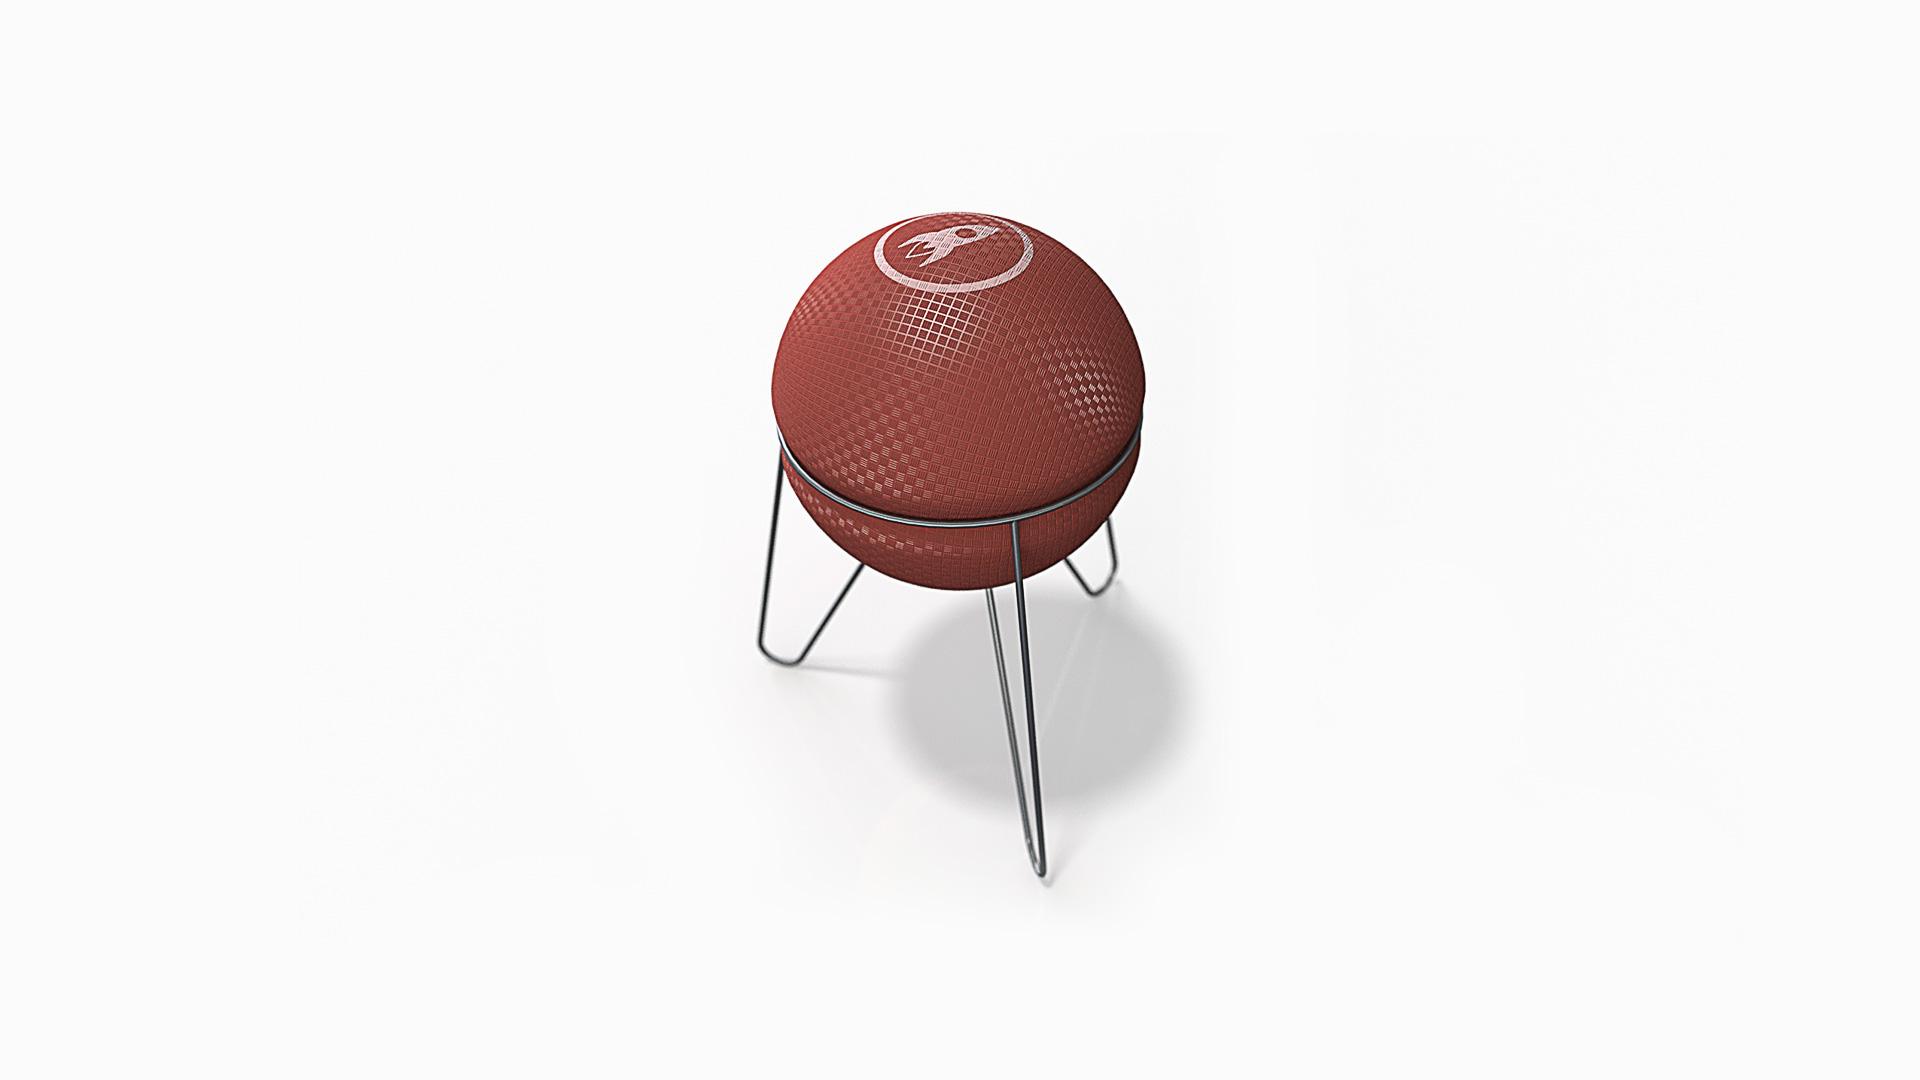 rocket ball stool by milt